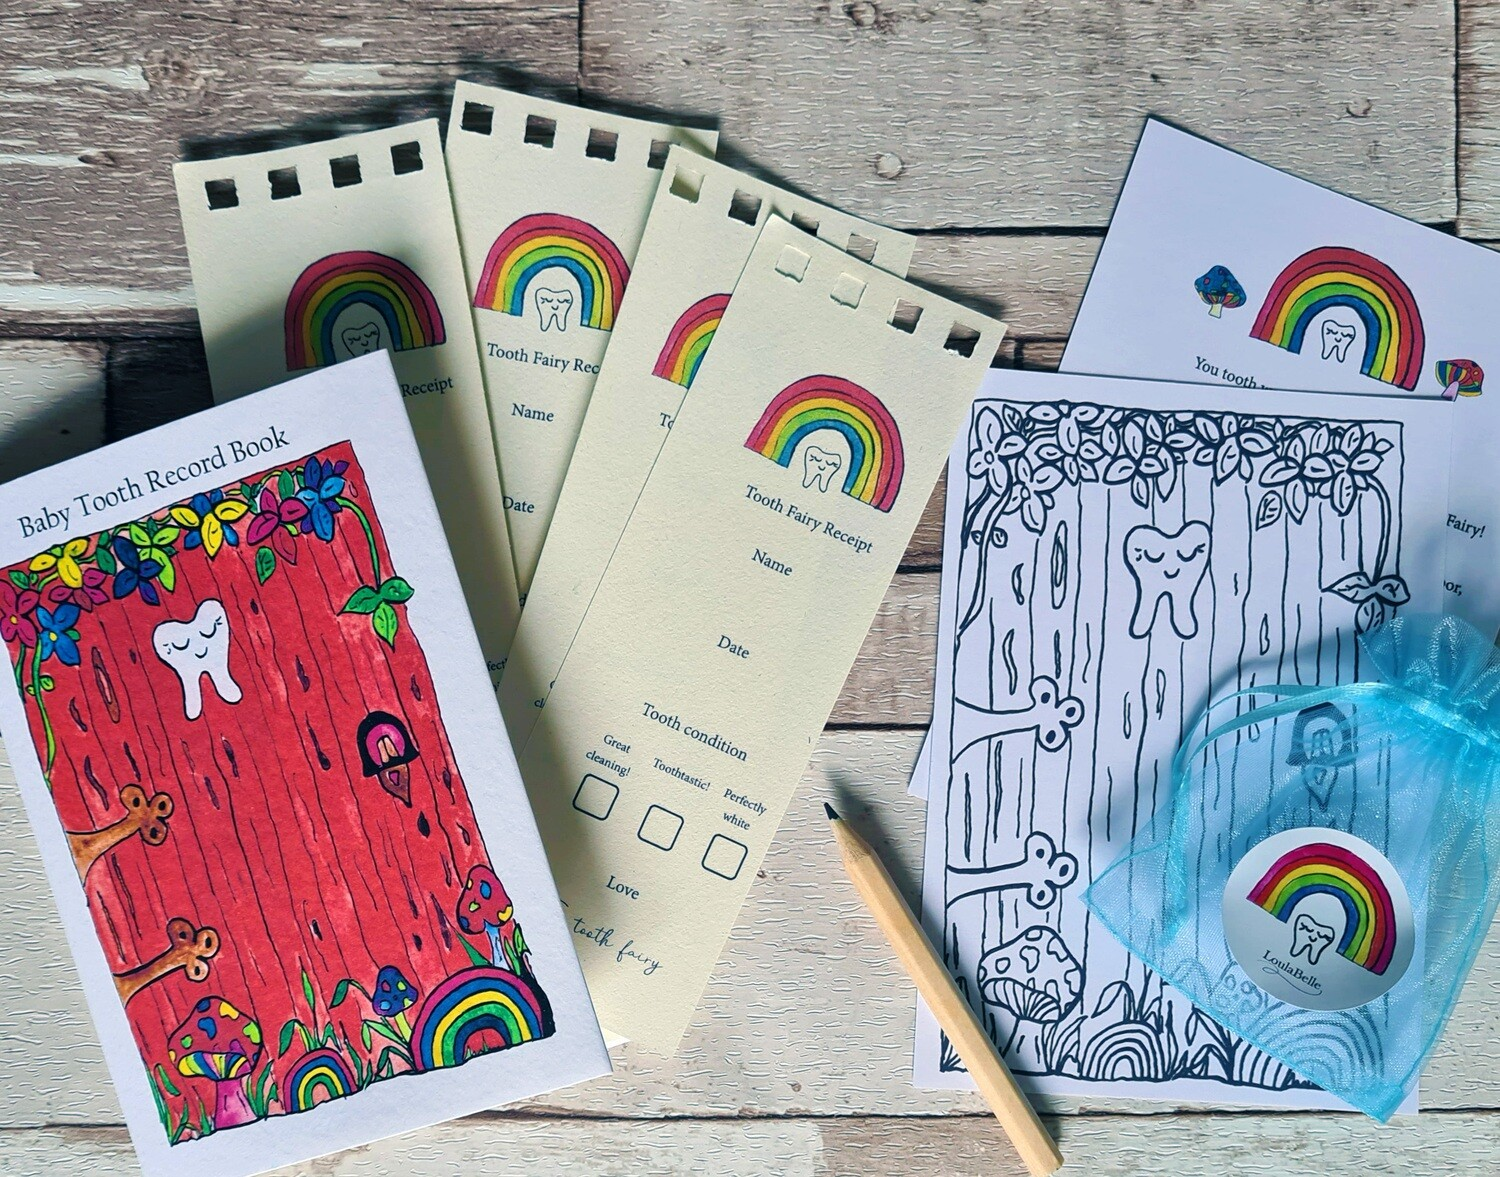 Tooth Fairy Record Book, receipts and more